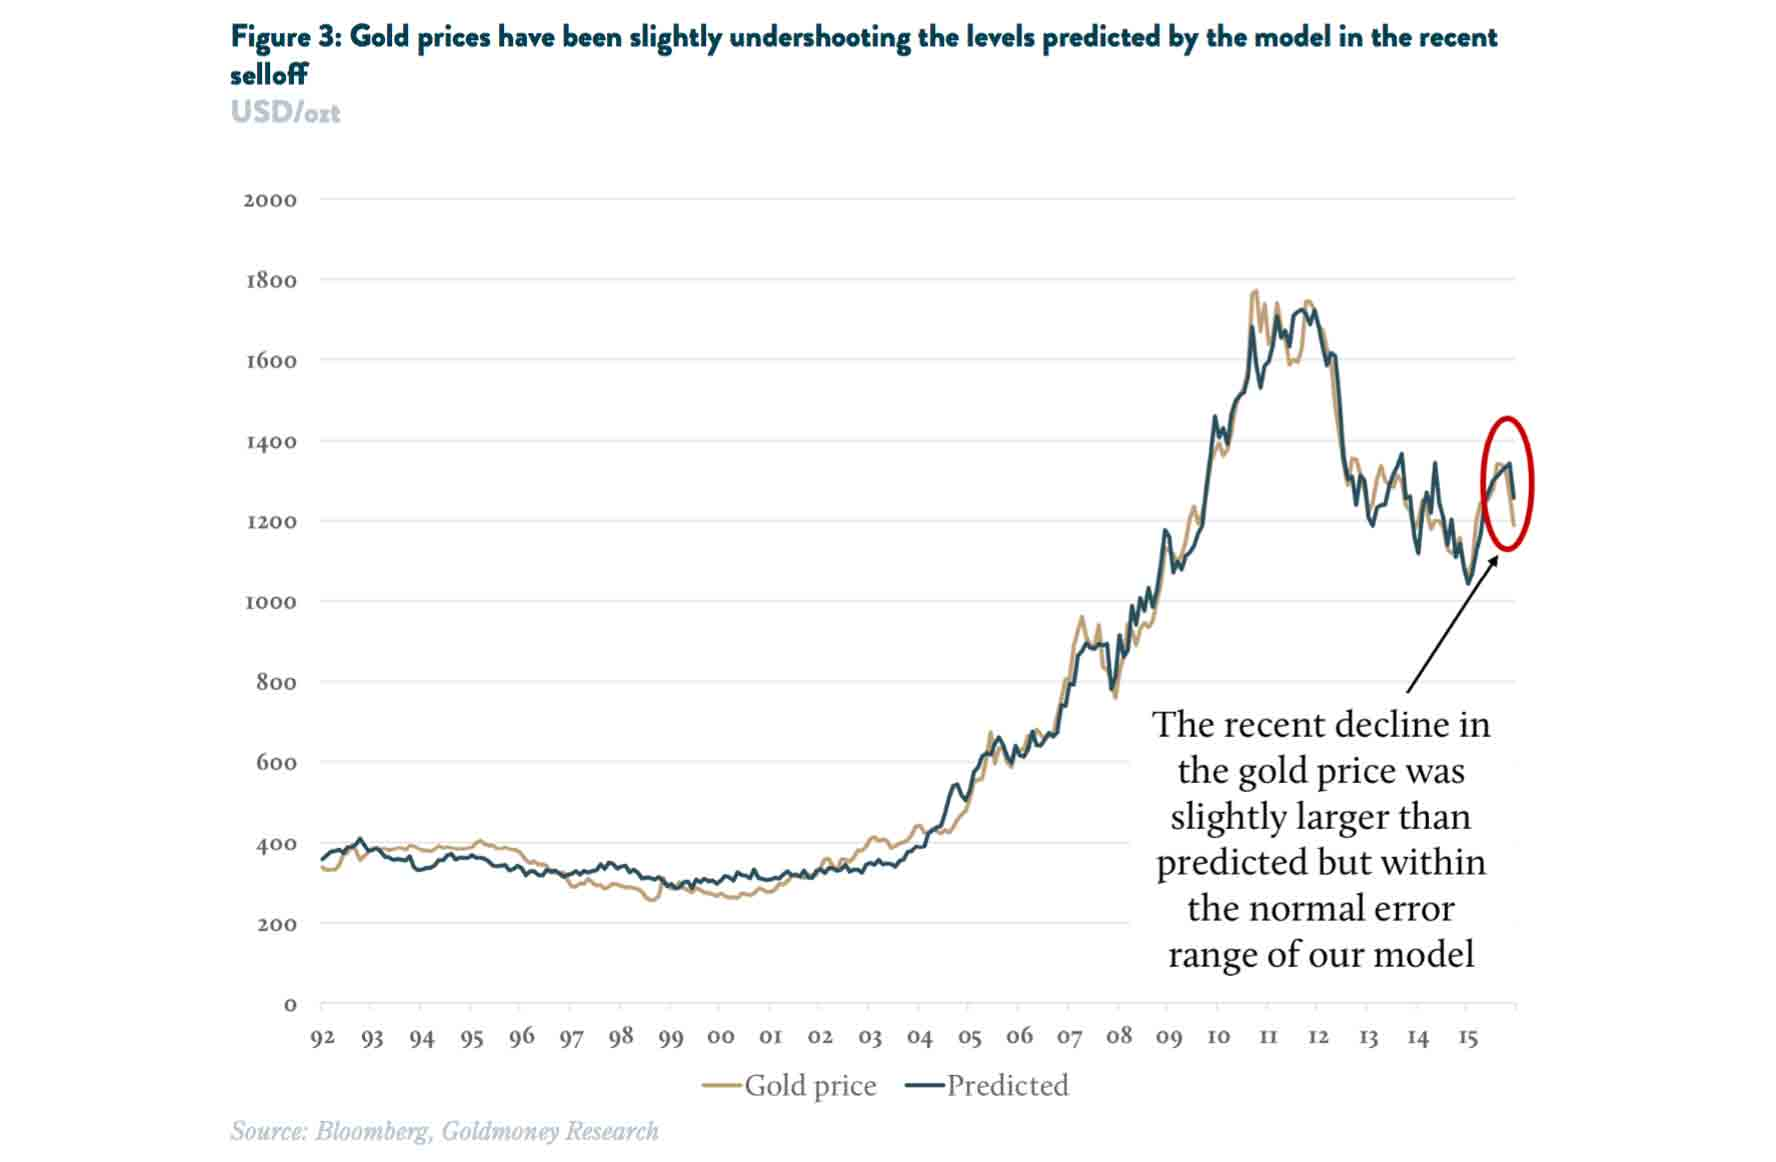 gold prices vs. predicted 15year